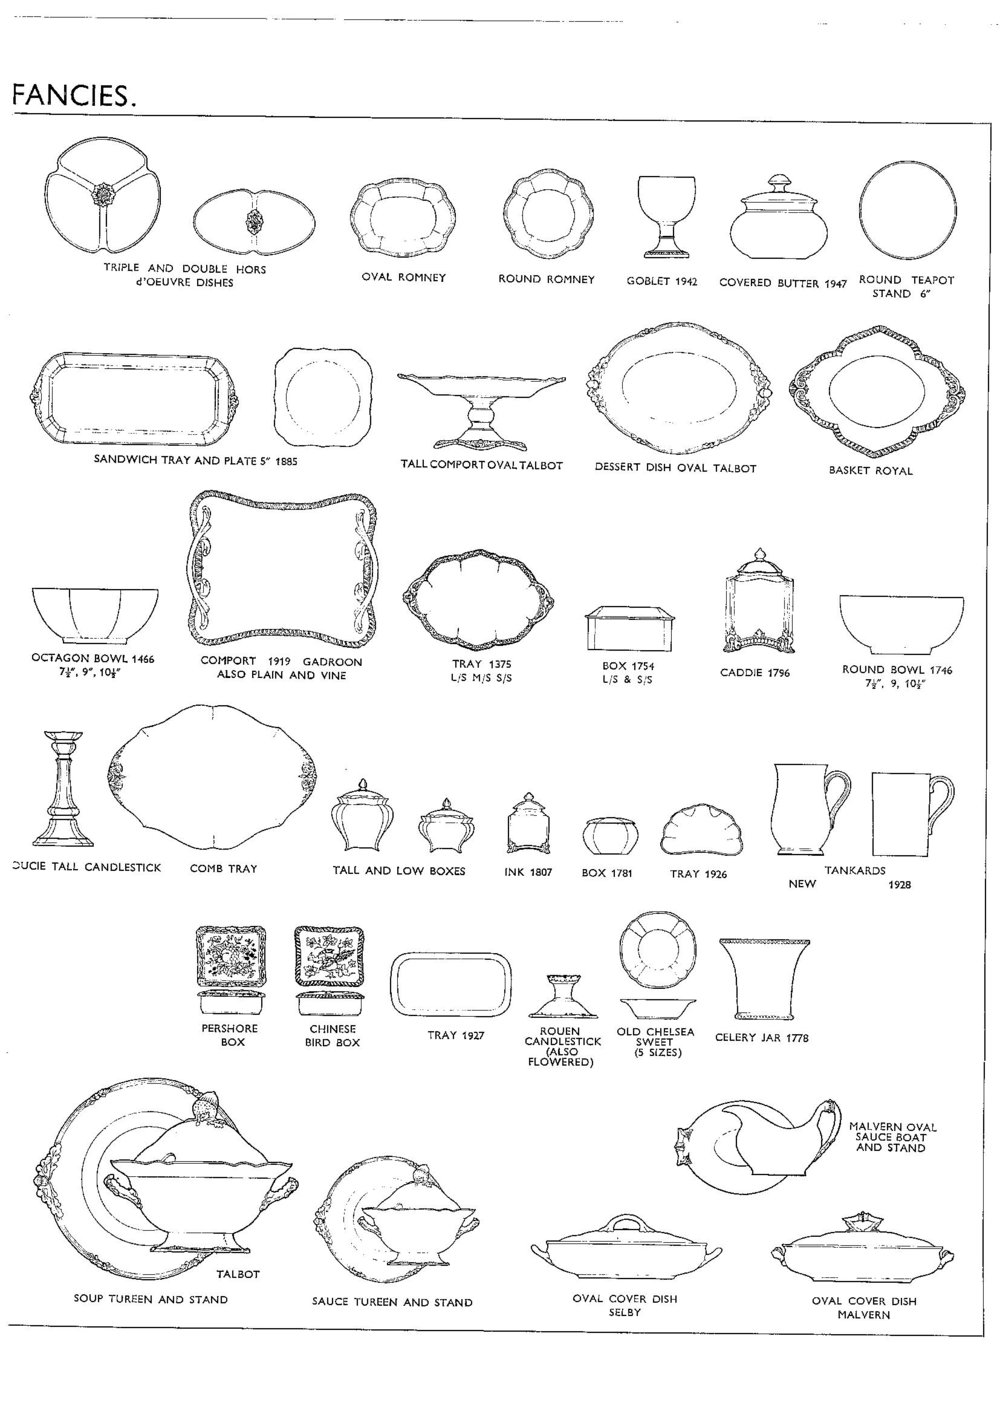 royal-crown-derby-outline-sketches-of-shapes-1955-page-9